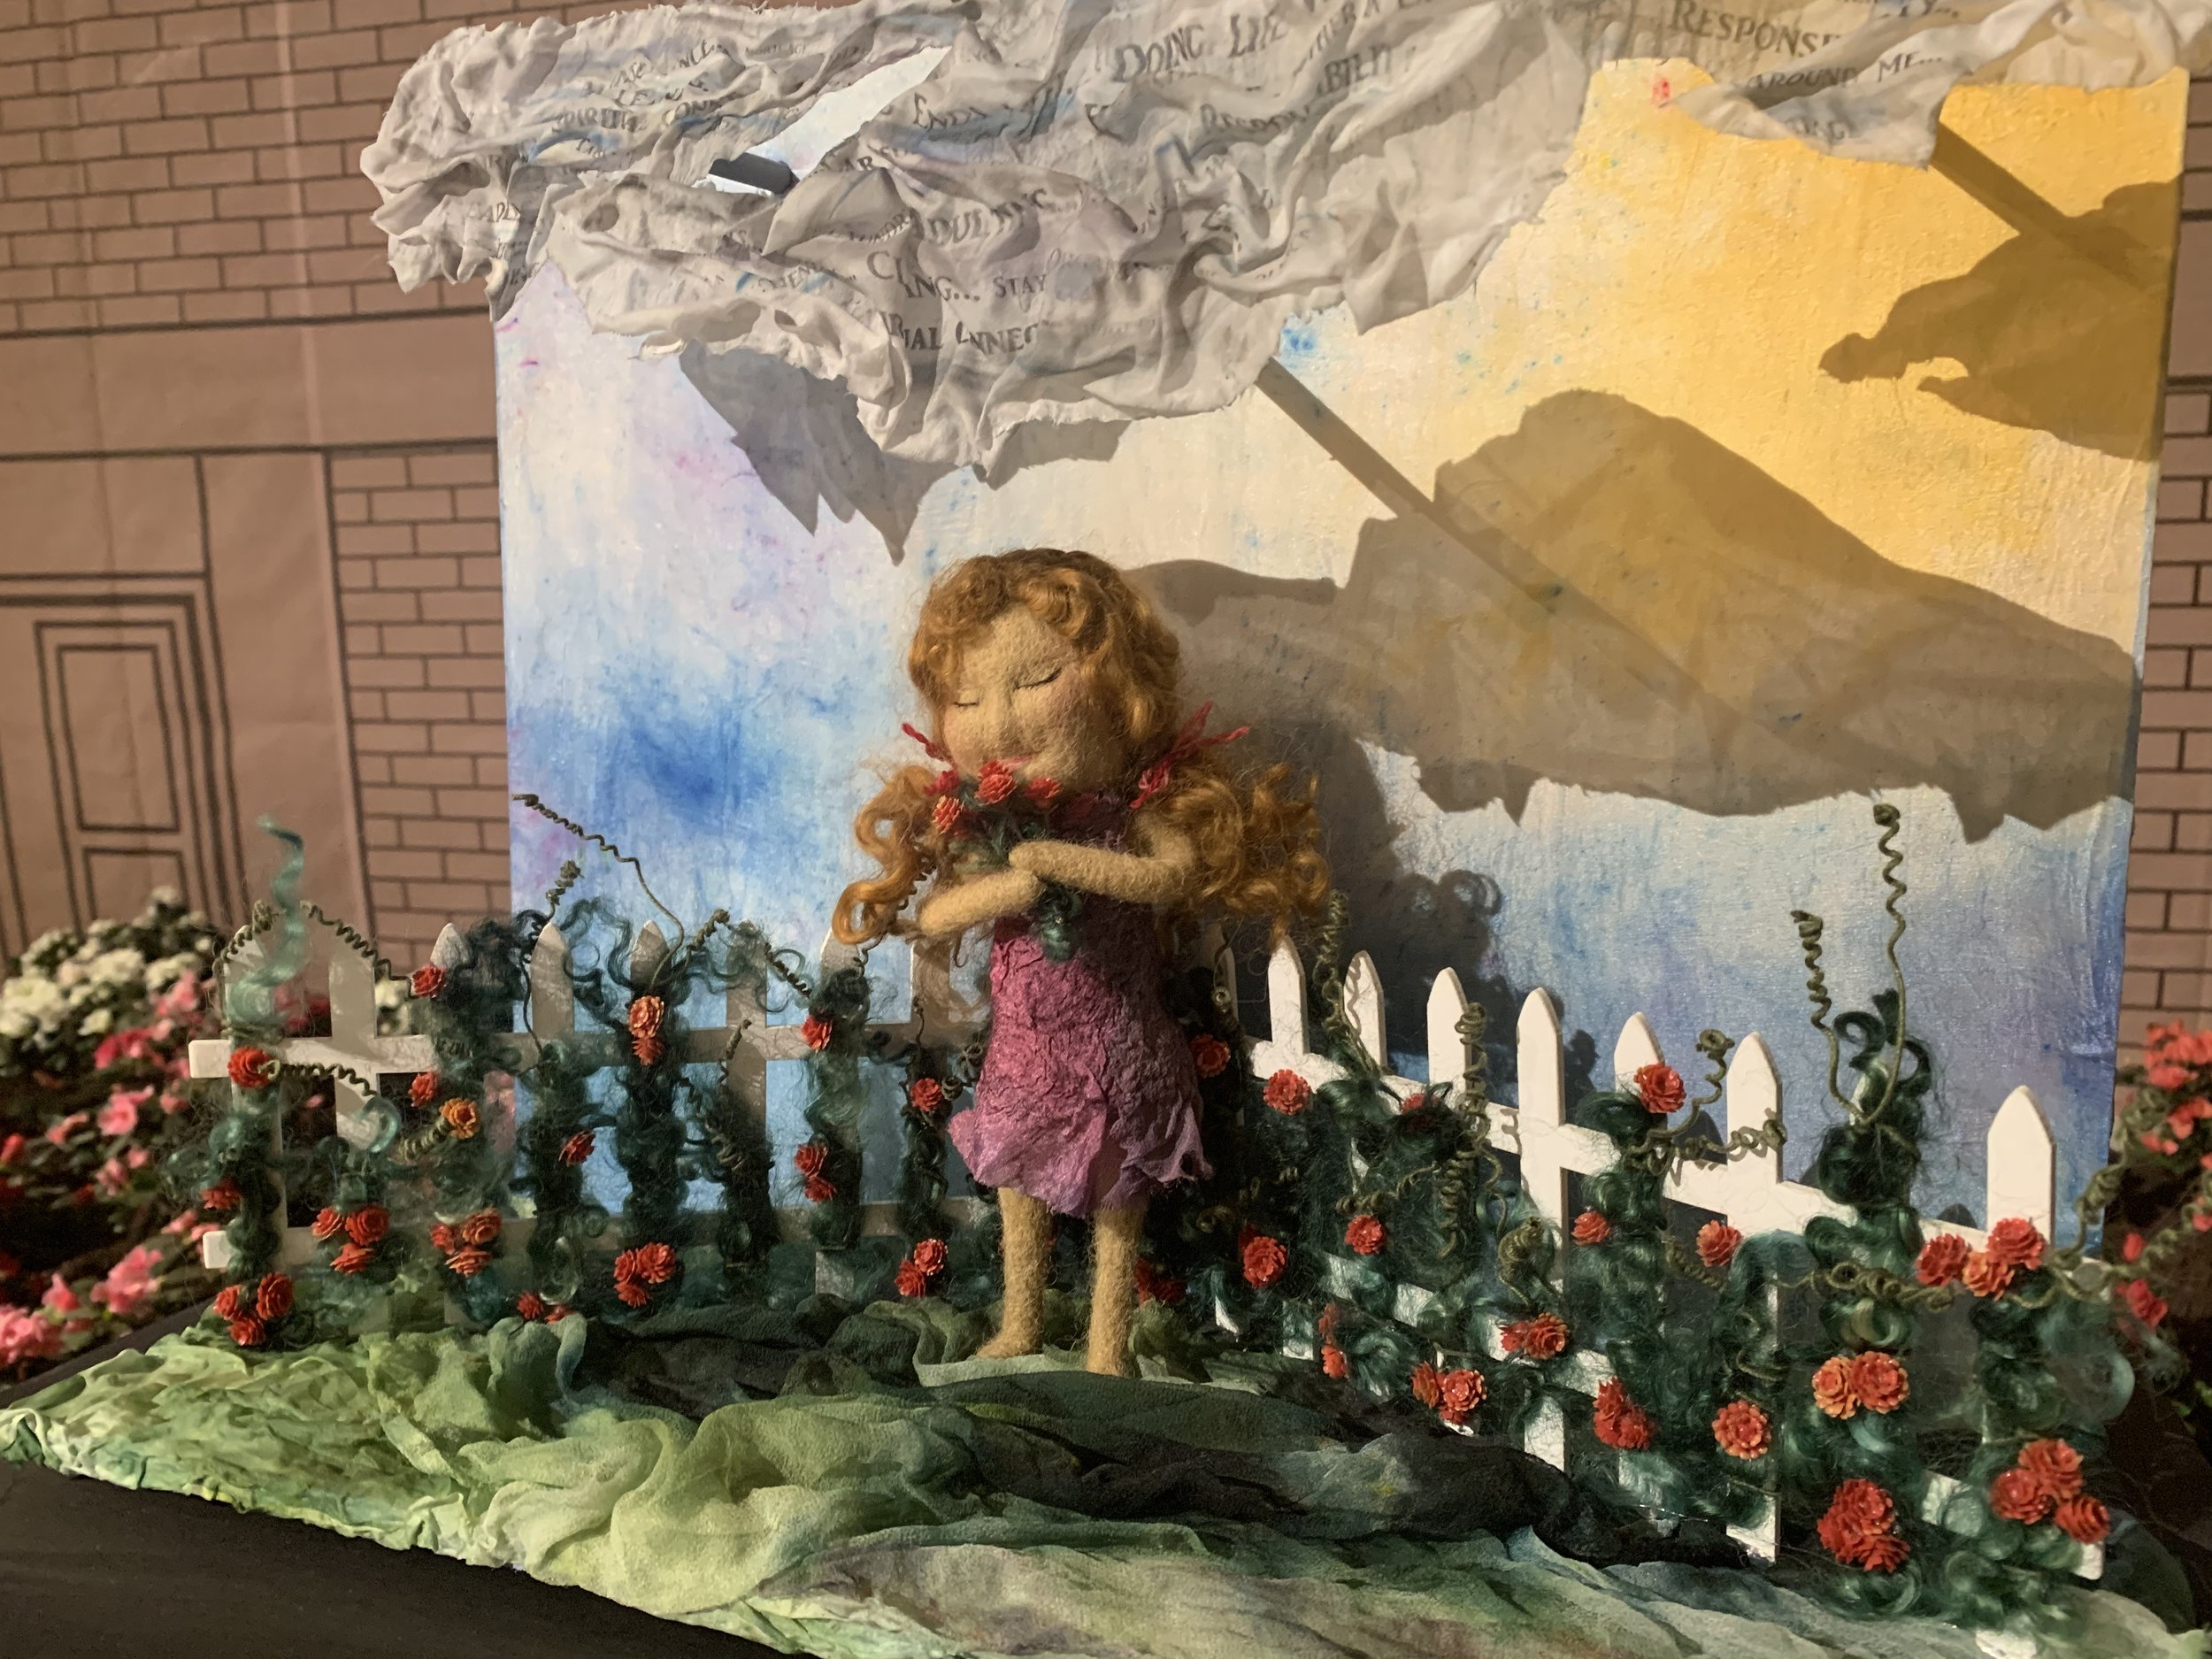 The art piece by Natasha Lehrer Lewis made me pause. Perhaps not to smell the roses, but to consider how I'm trying to balance the storm clouds and life's demands with more opportunities to feed my creative soul.